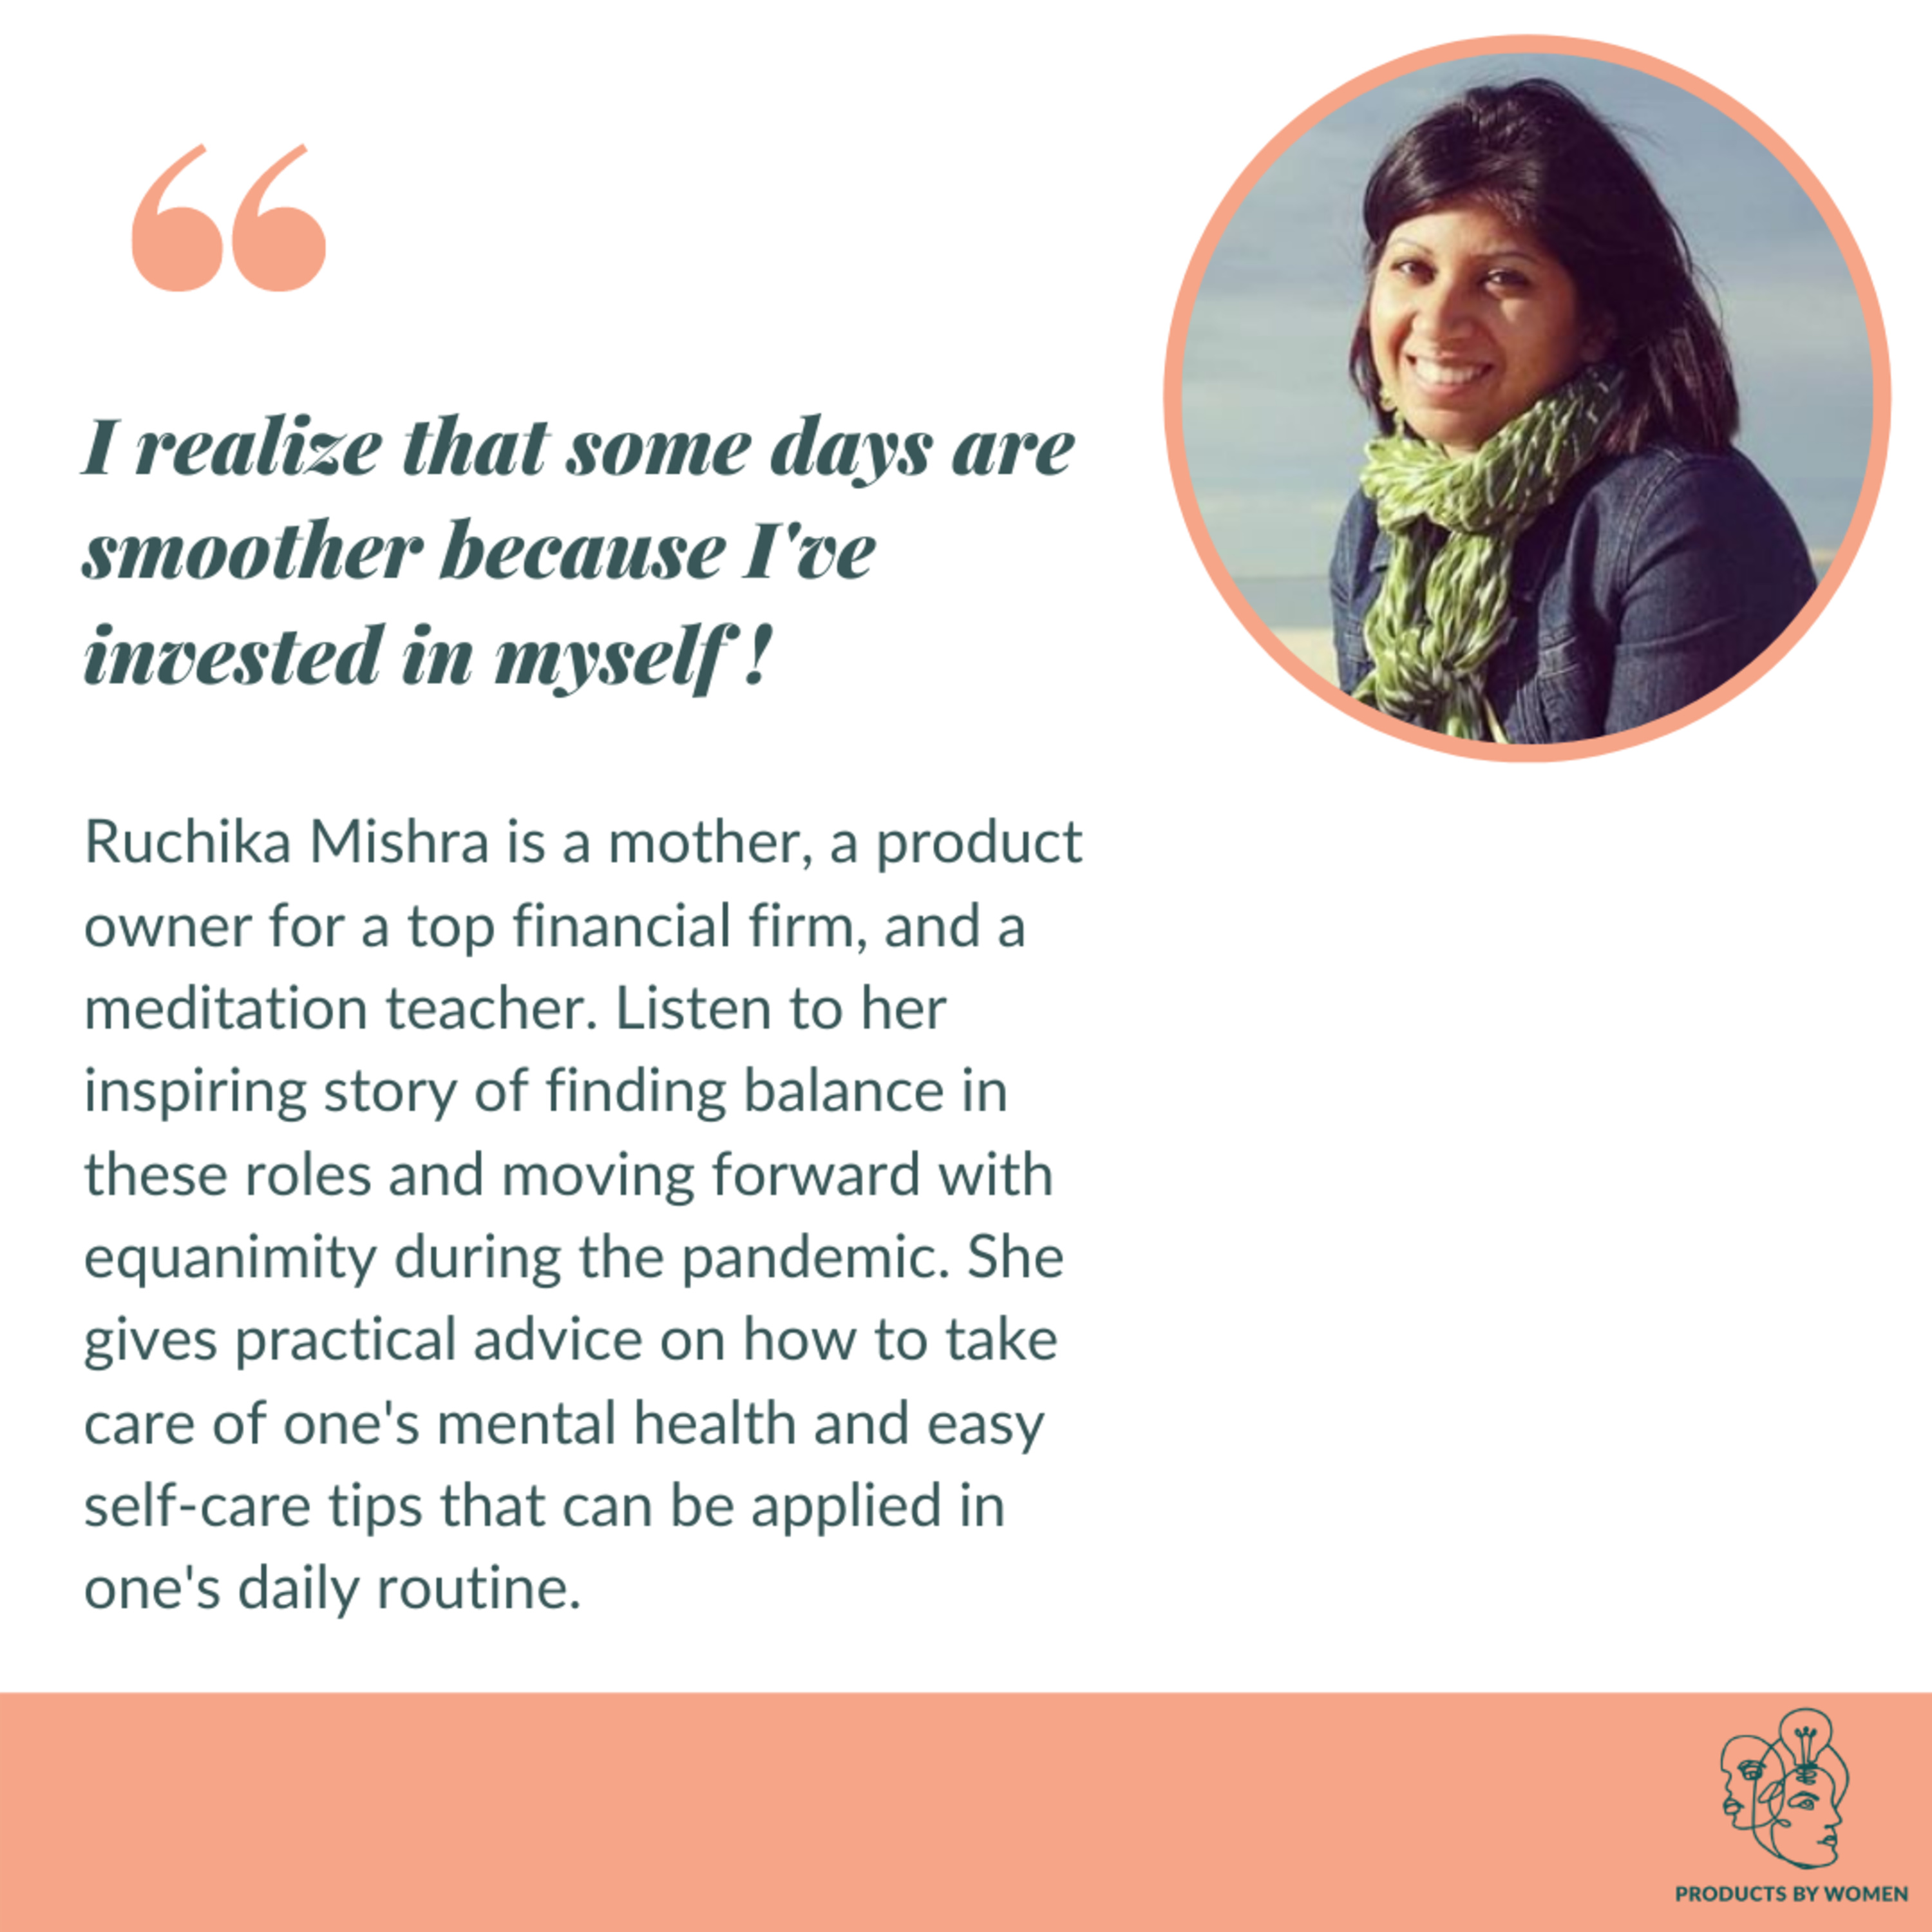 """""""I realize that some days are smoother because I've invested in myself"""" - Ruchika Mishra, Product Owner 